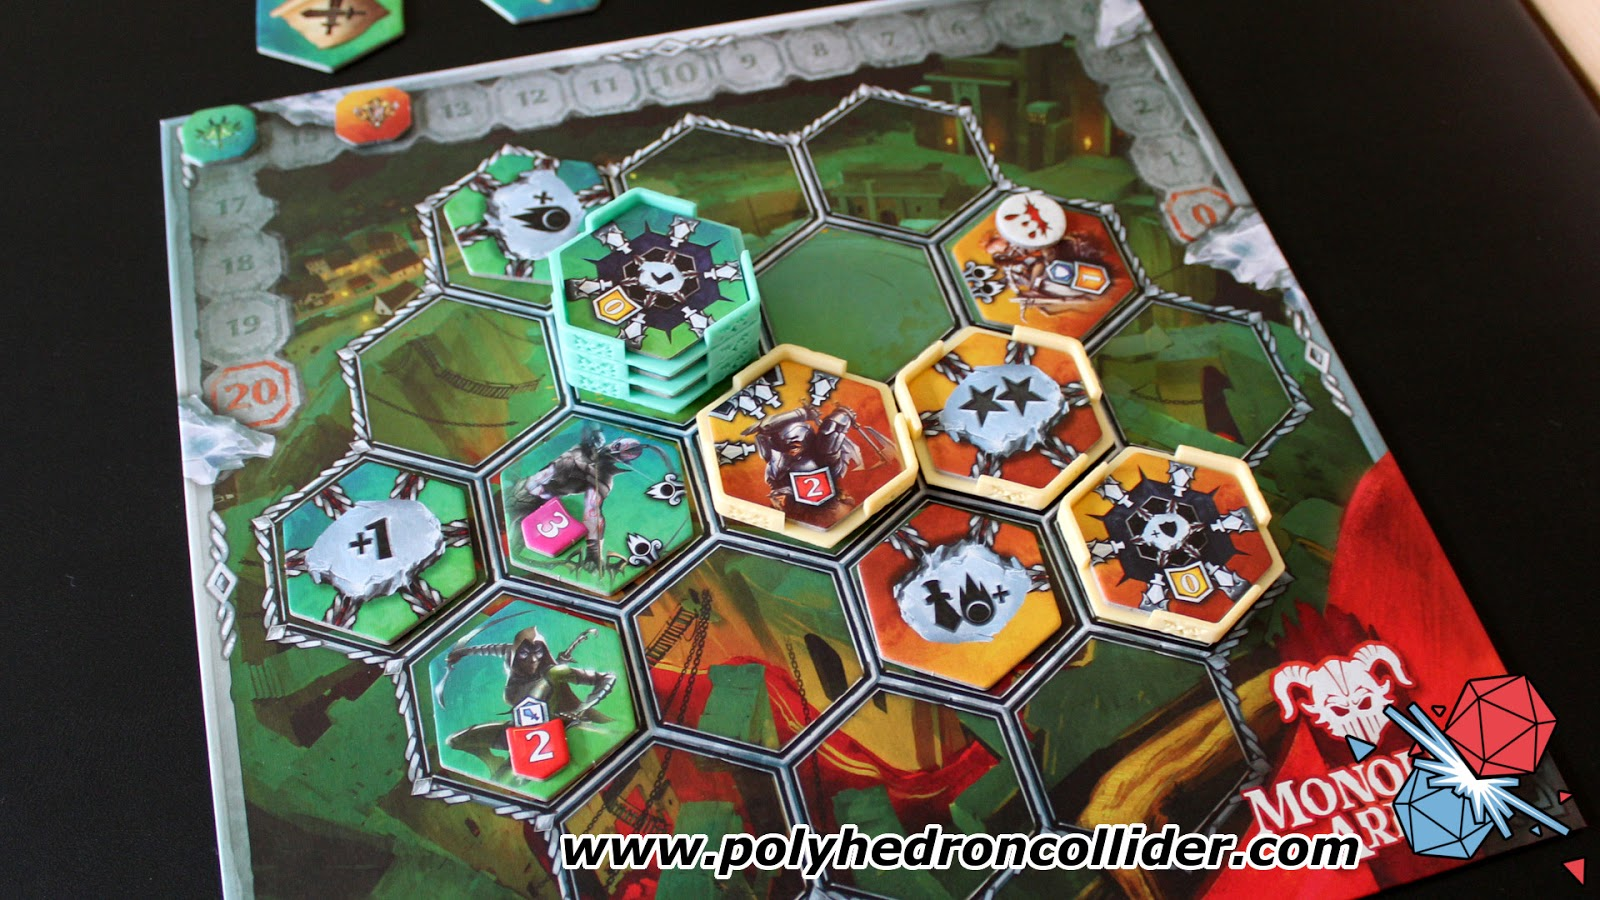 Monolith arena Neuroshima Hex board game review